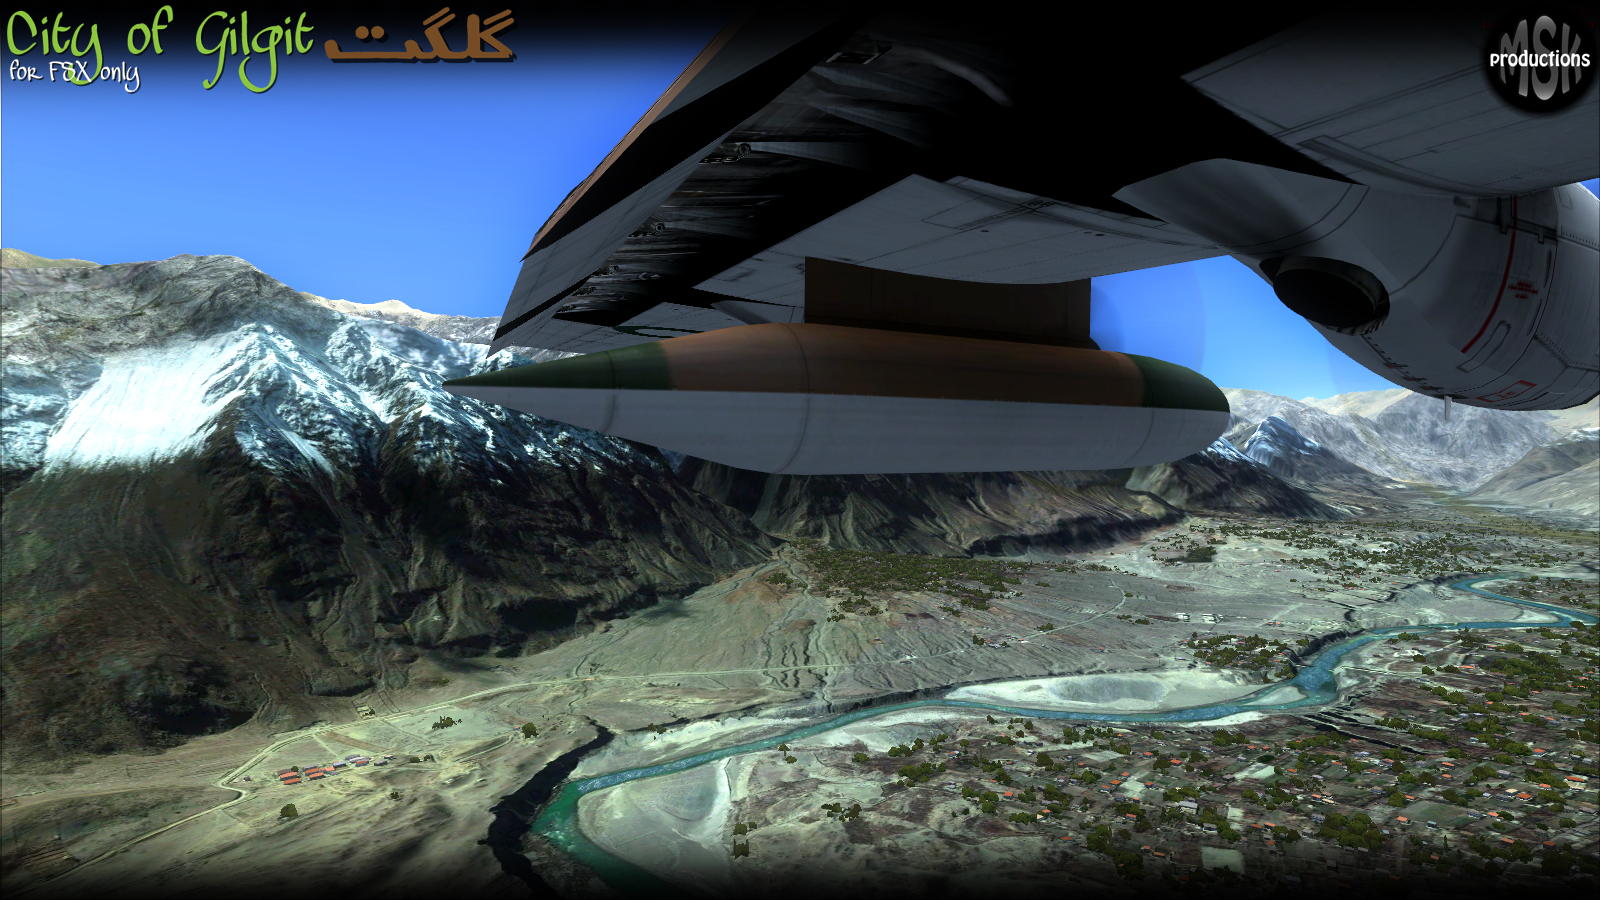 MSK - CITY OF GILGIT OPGT FSX